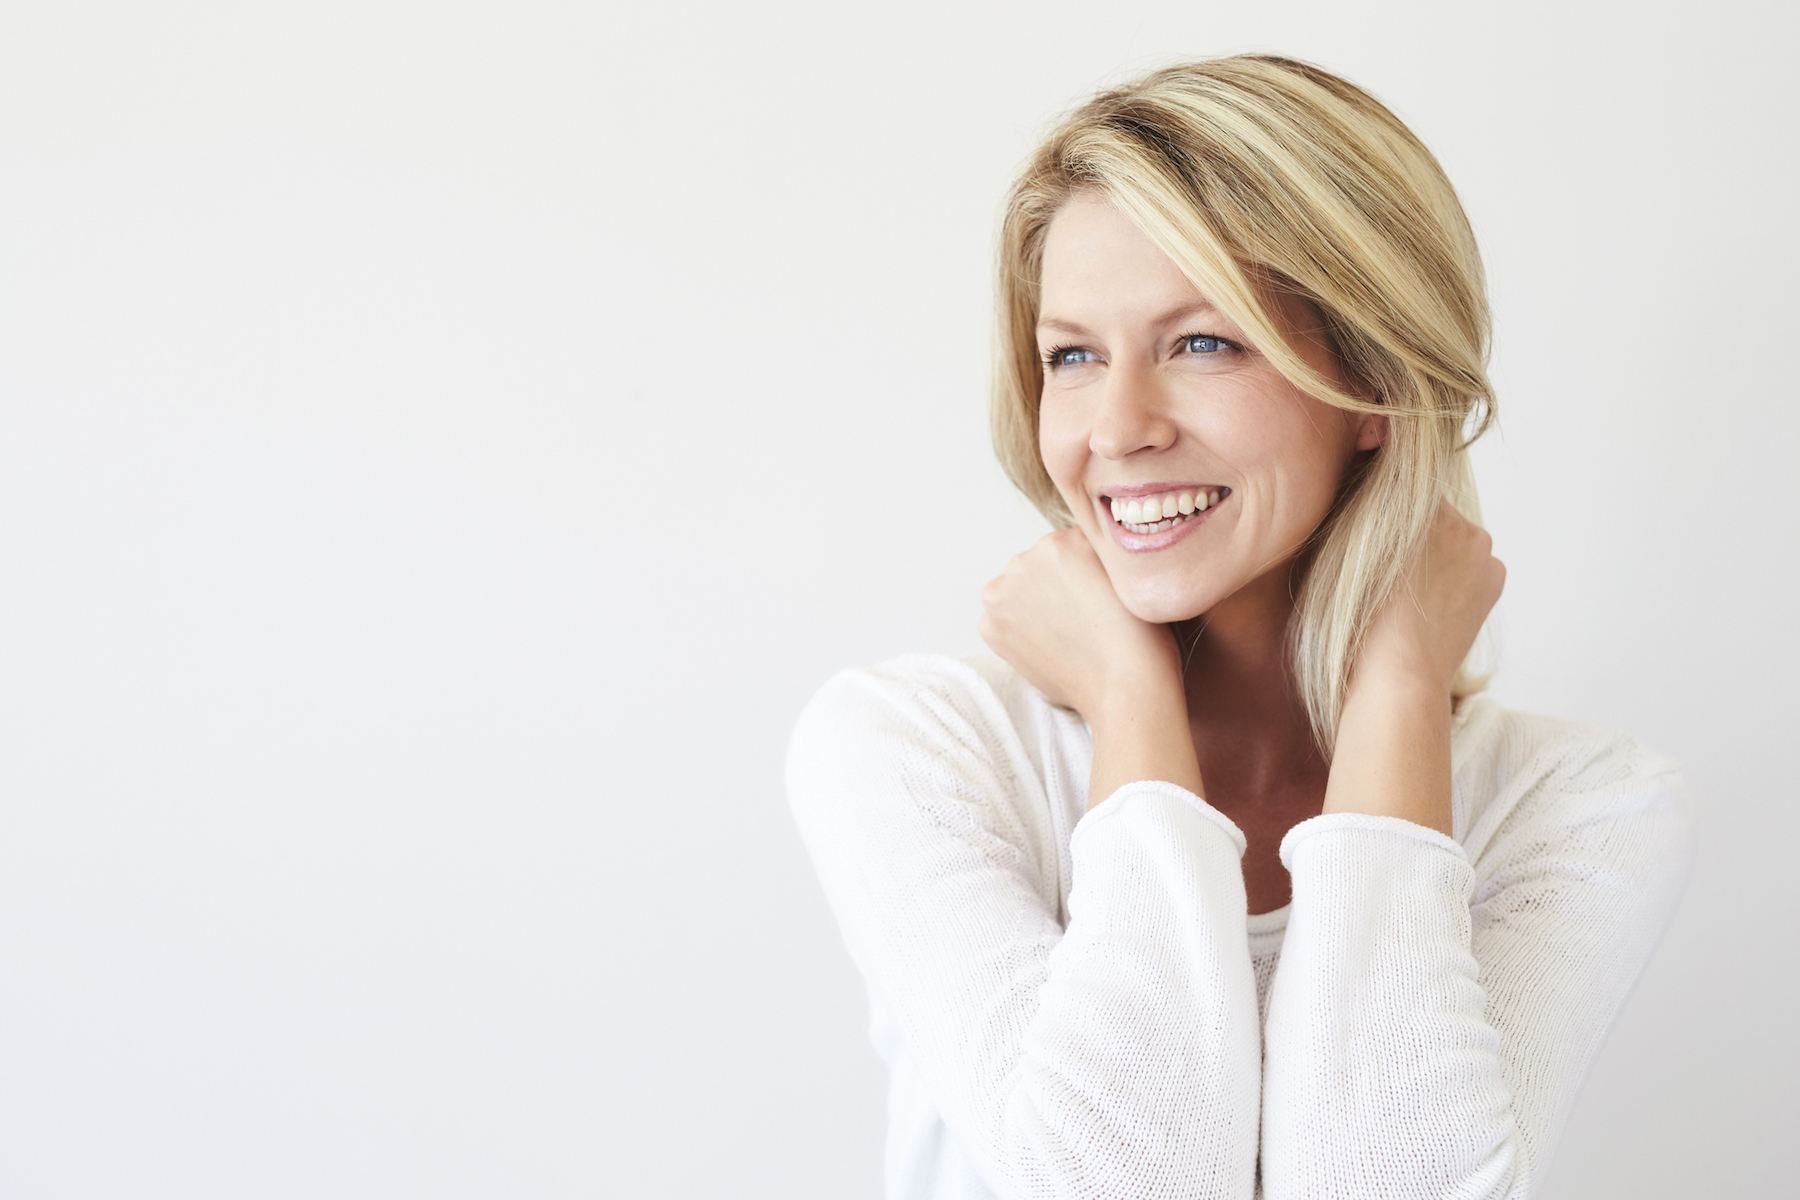 Blond Woman in a White Shirt